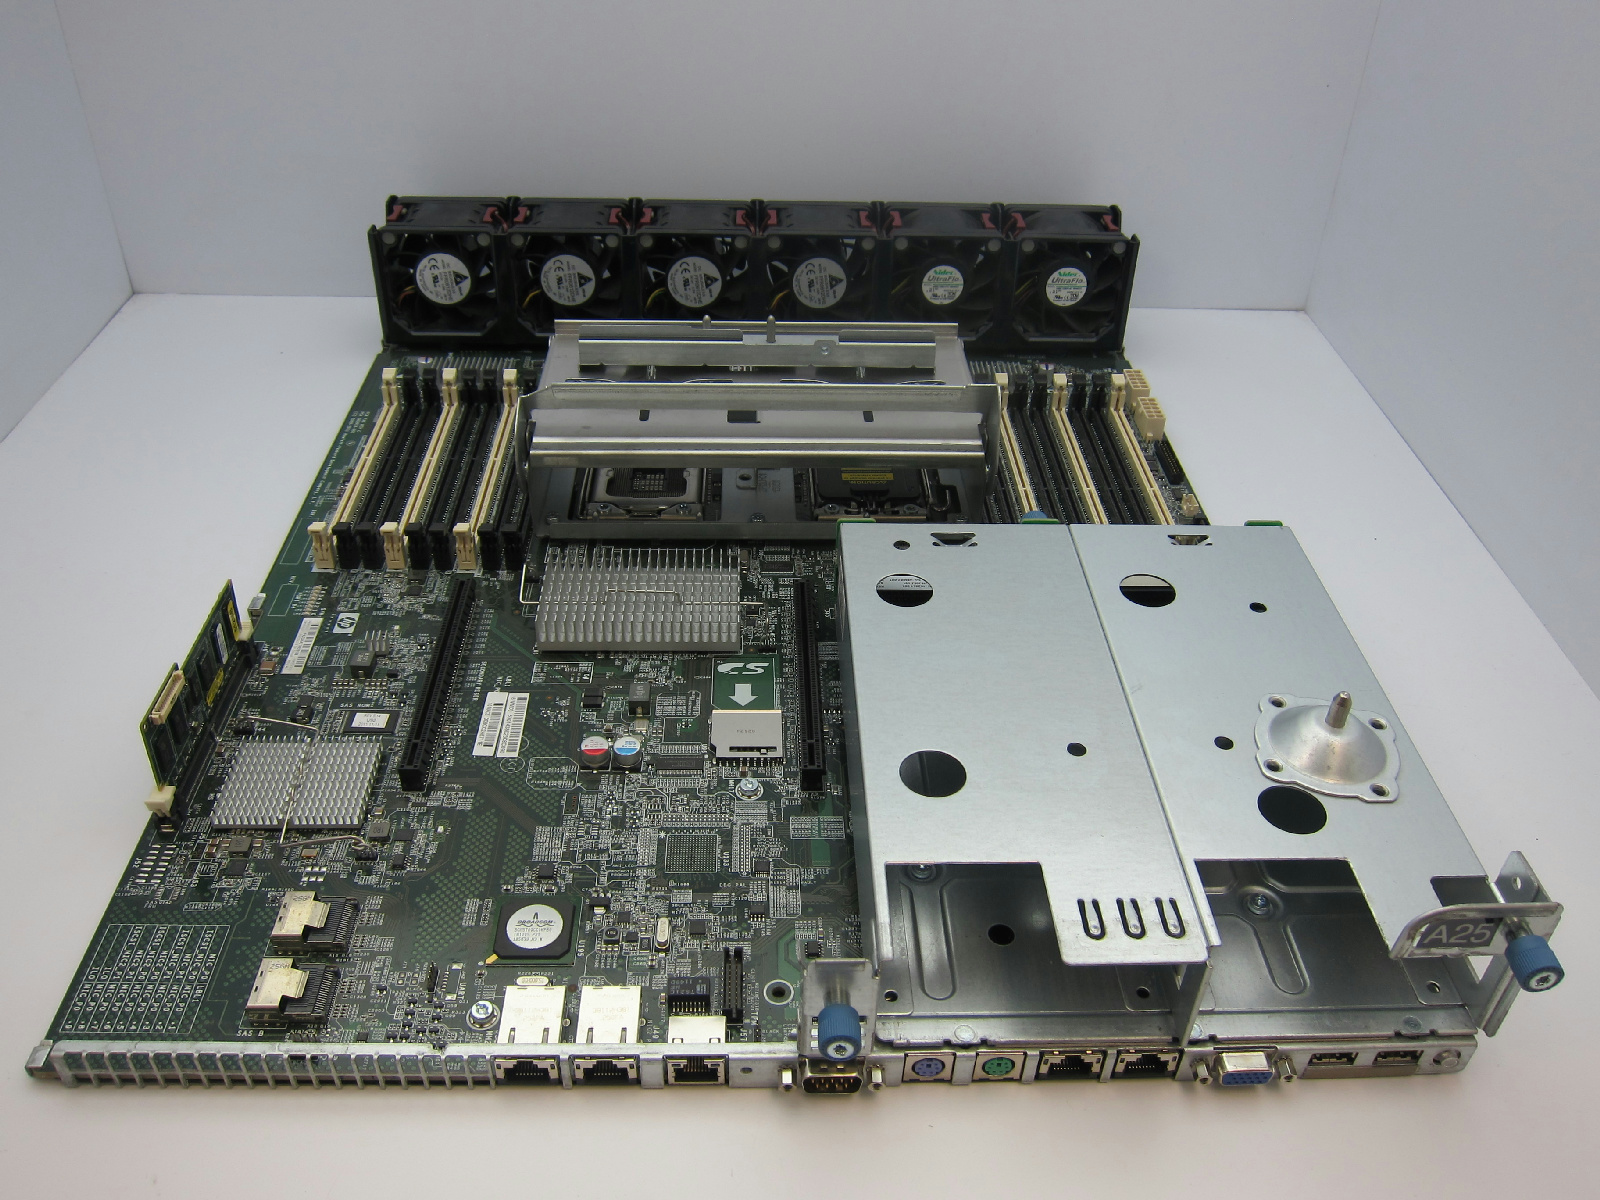 hp proliant dl380 g7 server motherboard 583918 001 599038 001 rev al w fans 708702280996 ebay. Black Bedroom Furniture Sets. Home Design Ideas